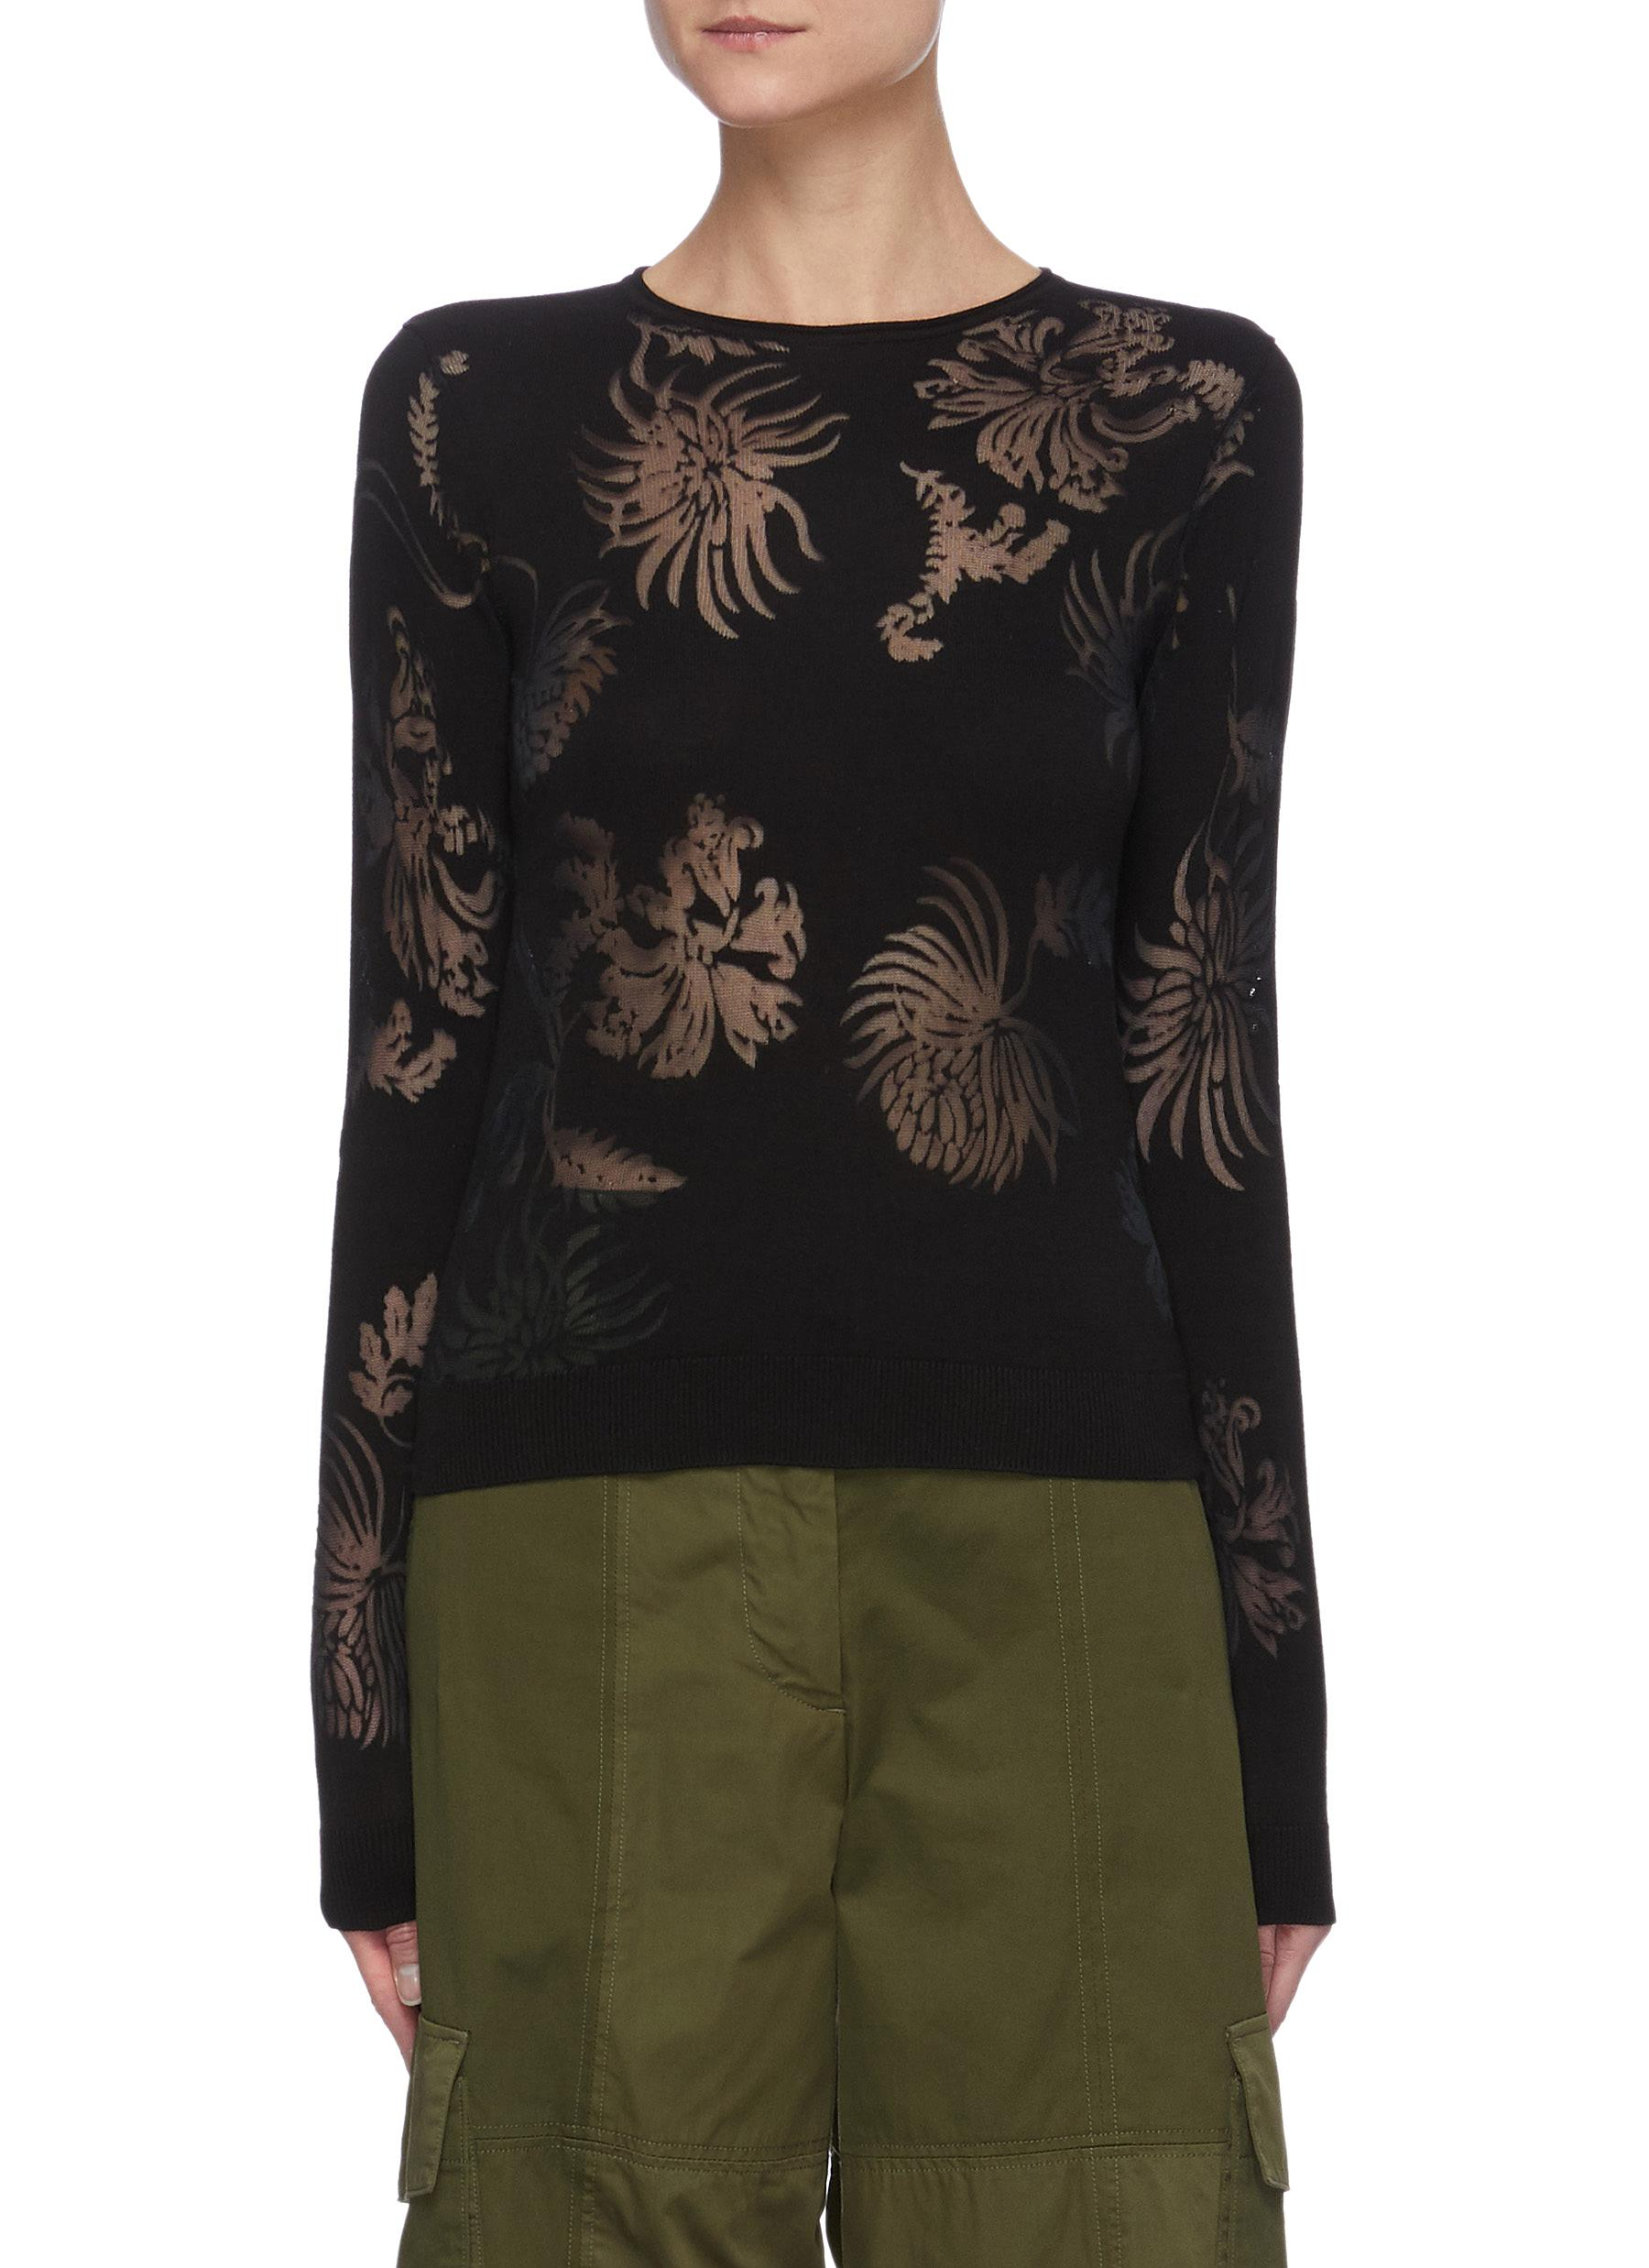 Jw Anderson Clothing SHEER FLORAL INSERT KNIT TOP